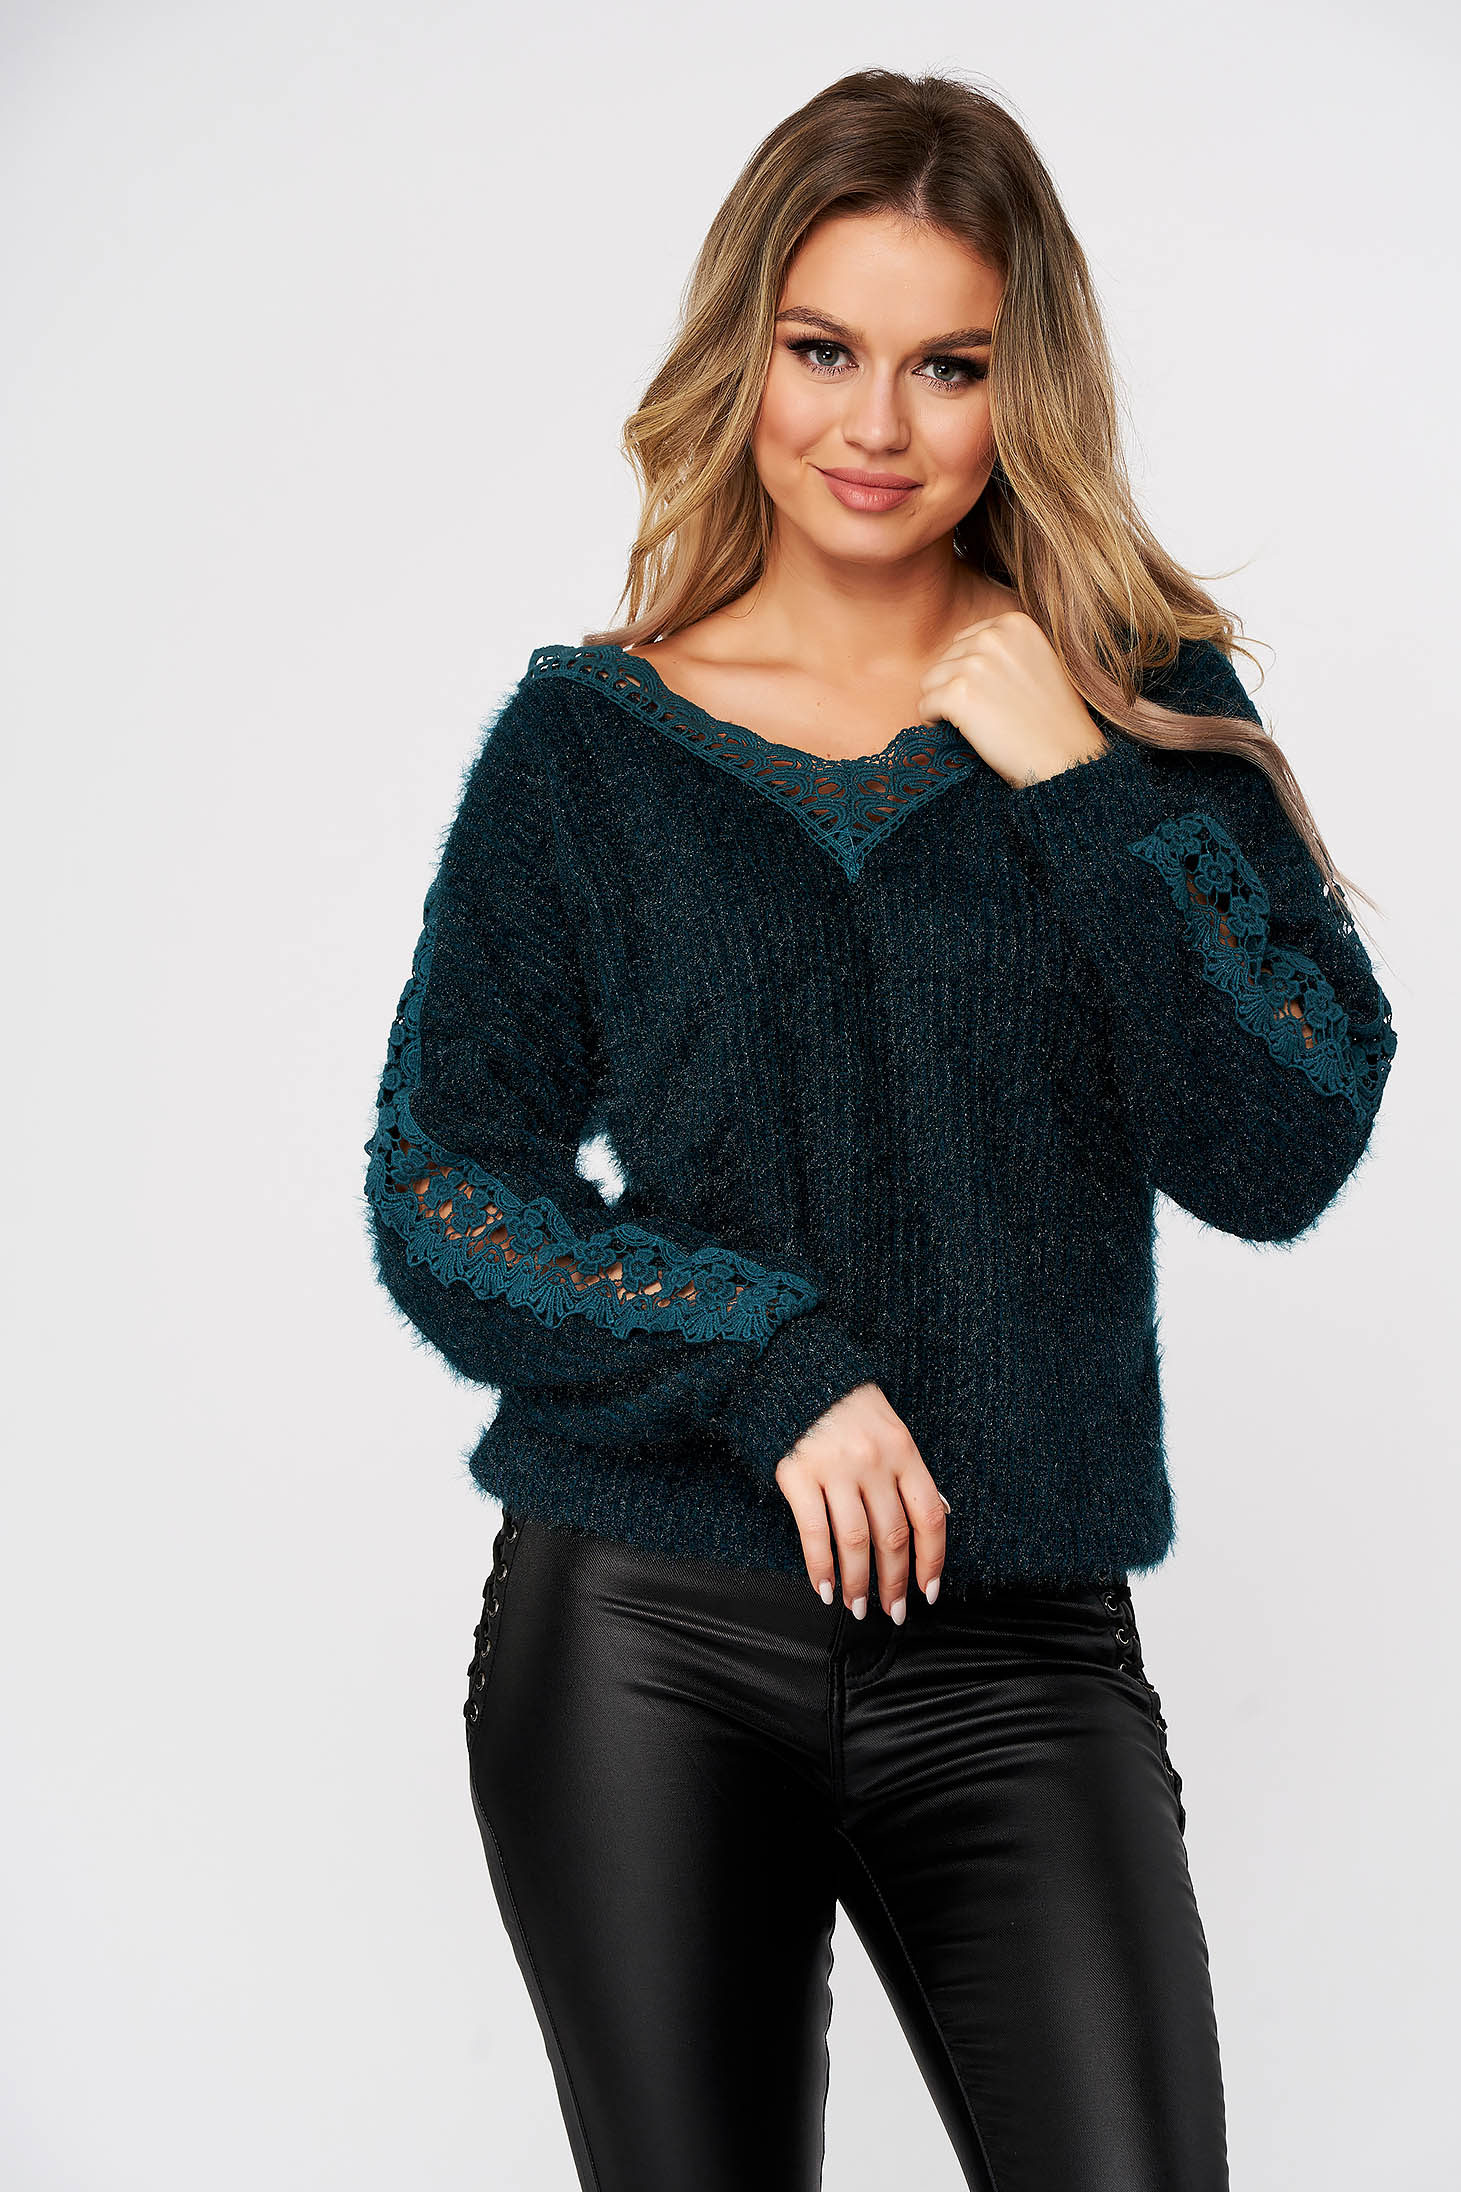 Dirty green sweater casual knitted fabric with lace details flared